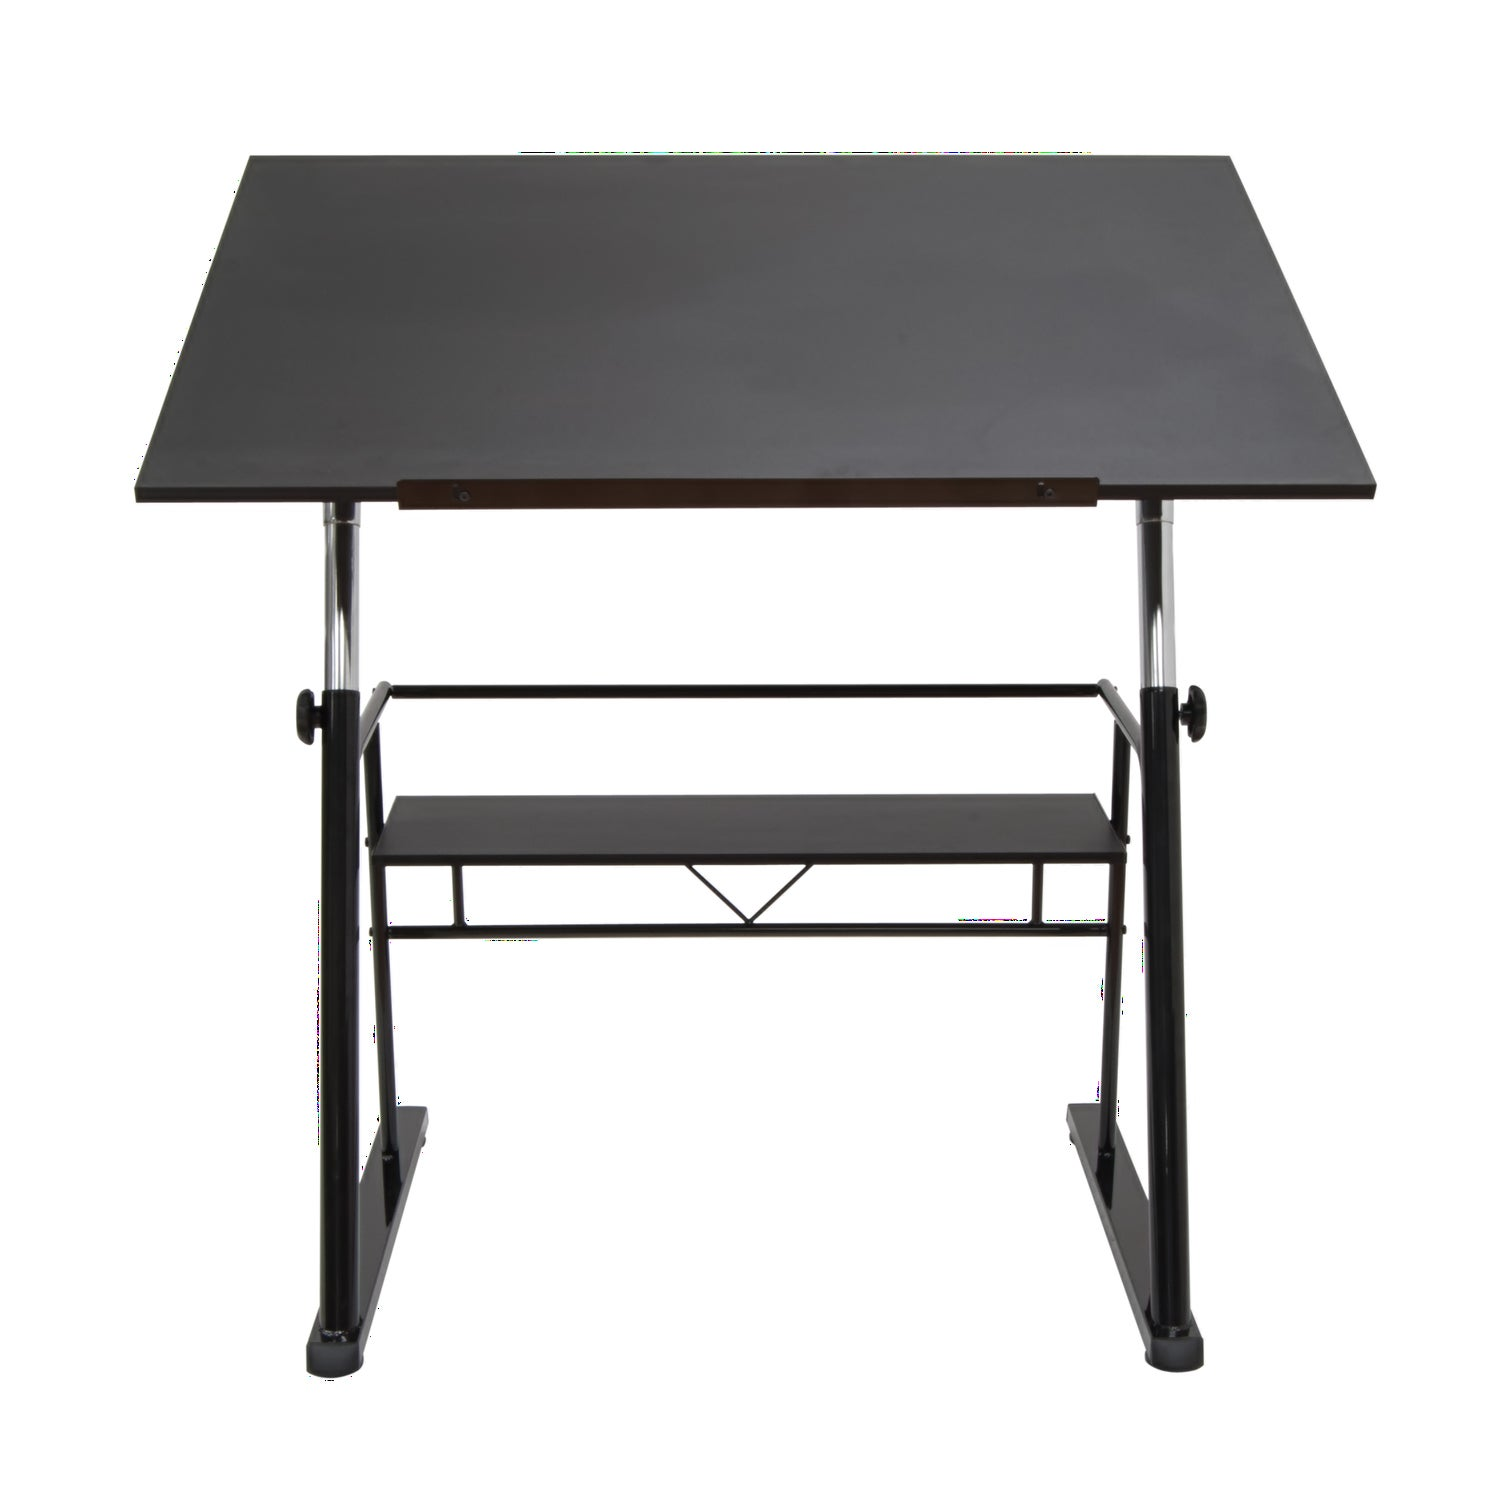 Offex Zenith Drafting Table - Black (Black)